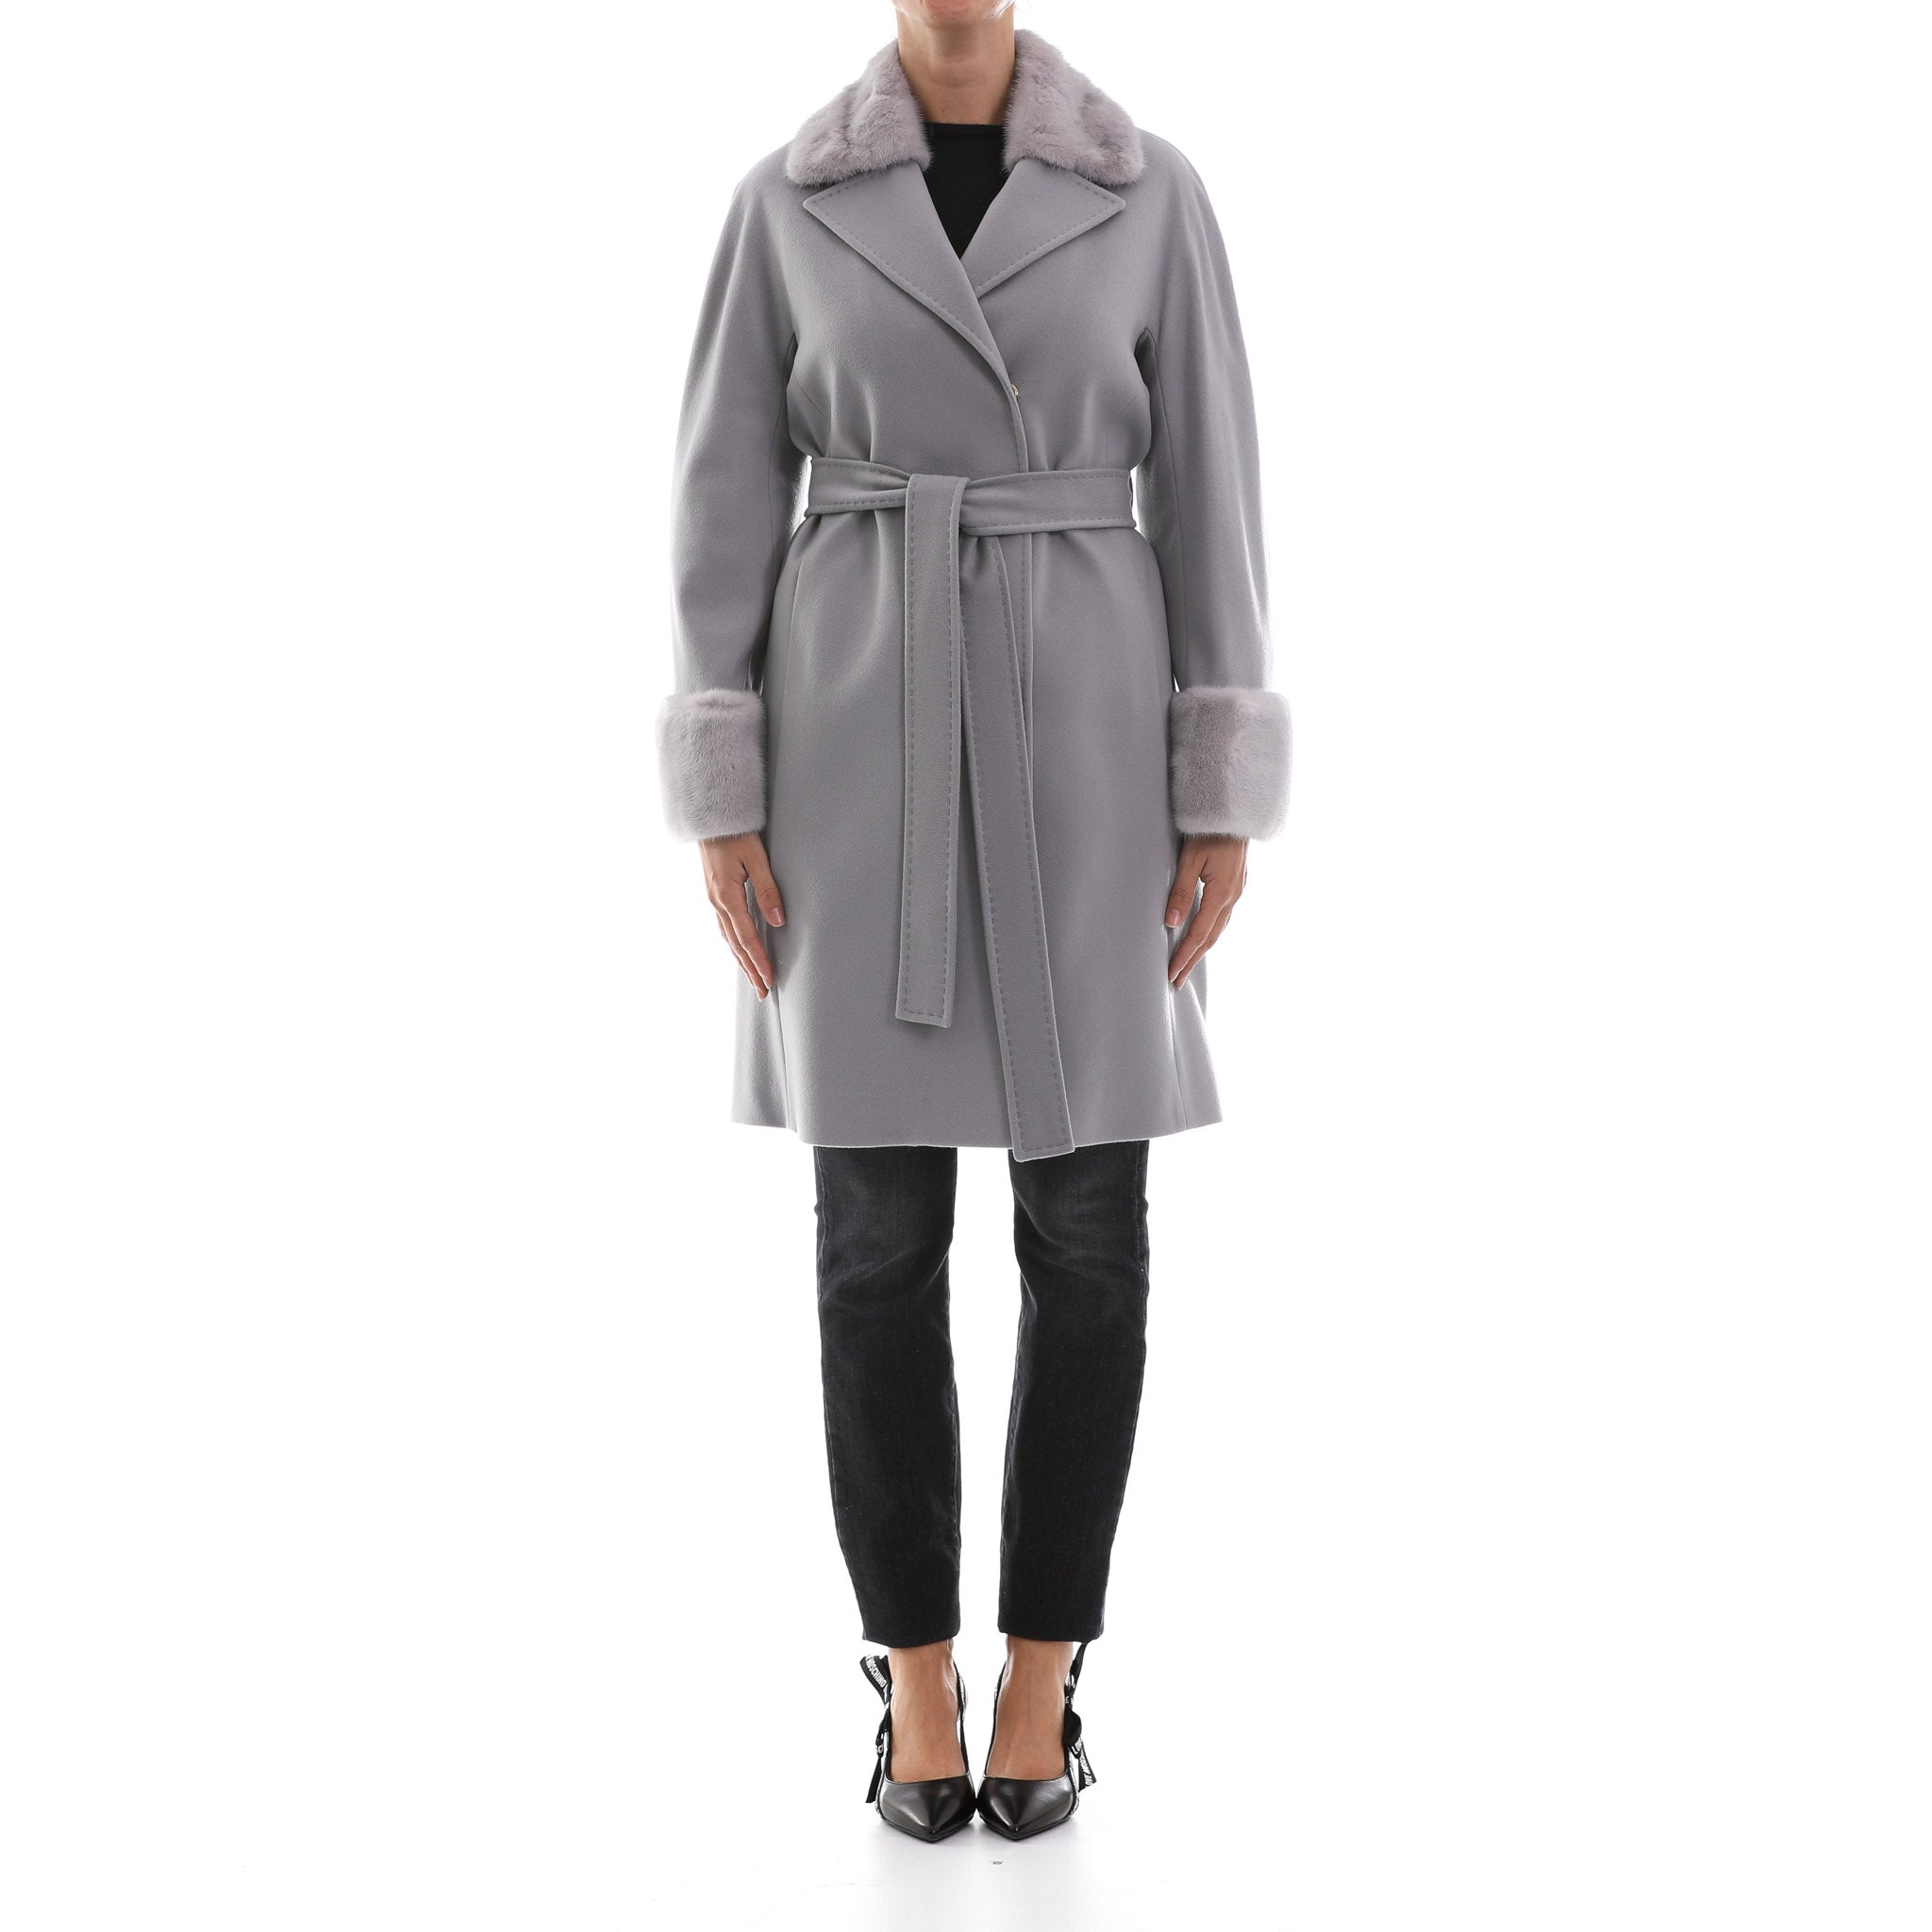 Heresis Virgin Wool Coat-HERESIS-SHOPATVOI.COM - Luxury Fashion Designer